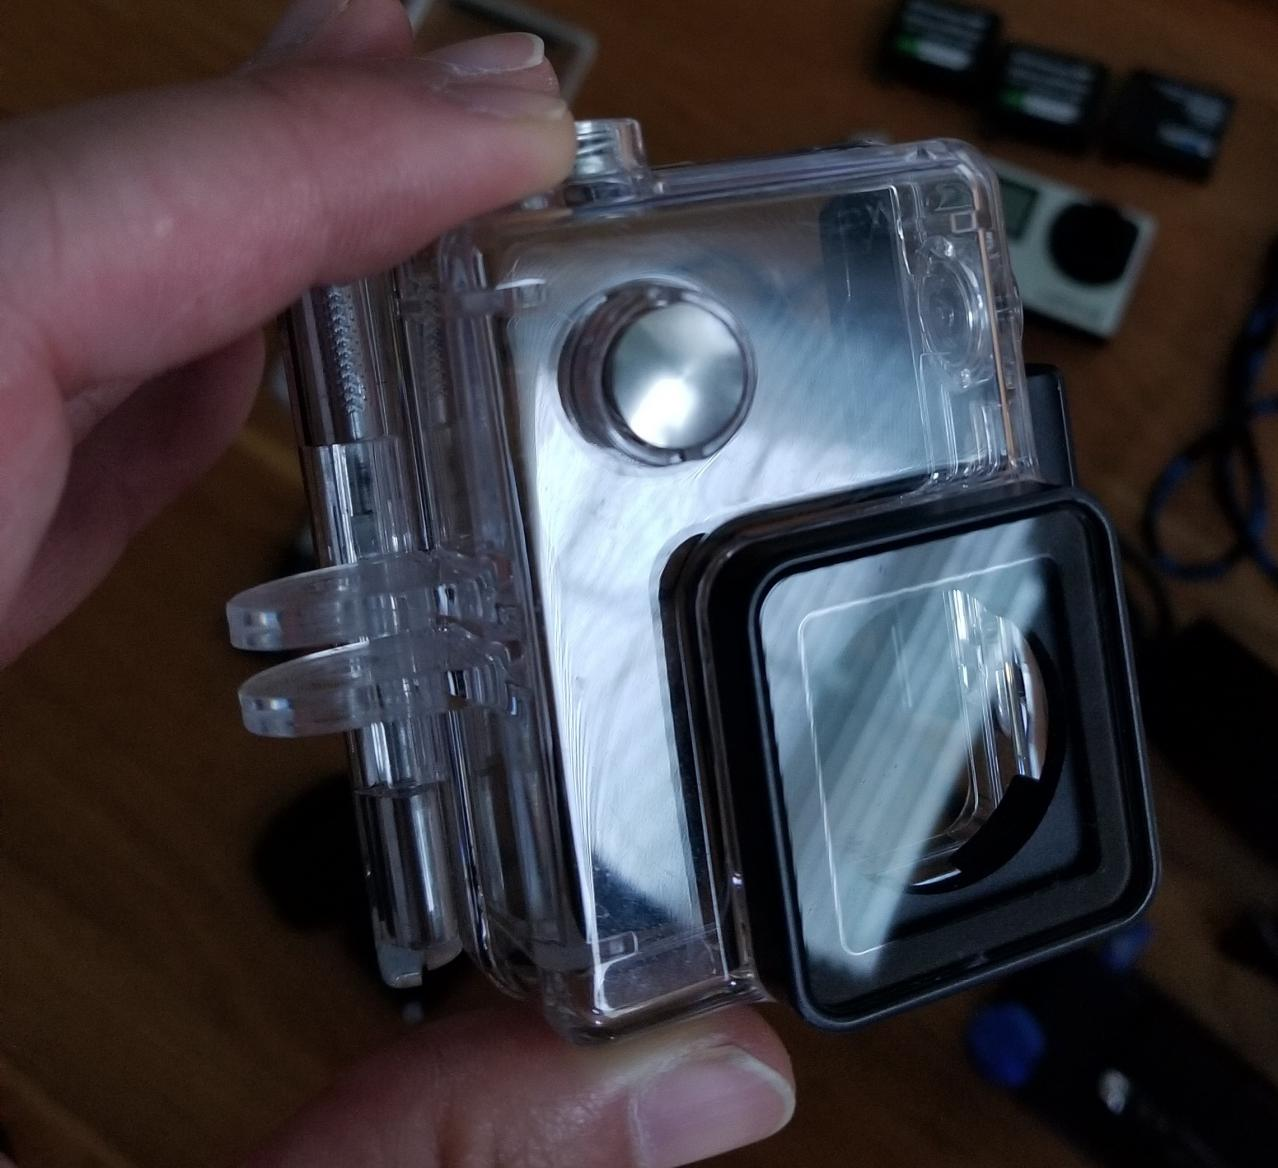 FS: GoPro Hero 4 Silver, SF bay area, 0-20190525_185819-2-jpg